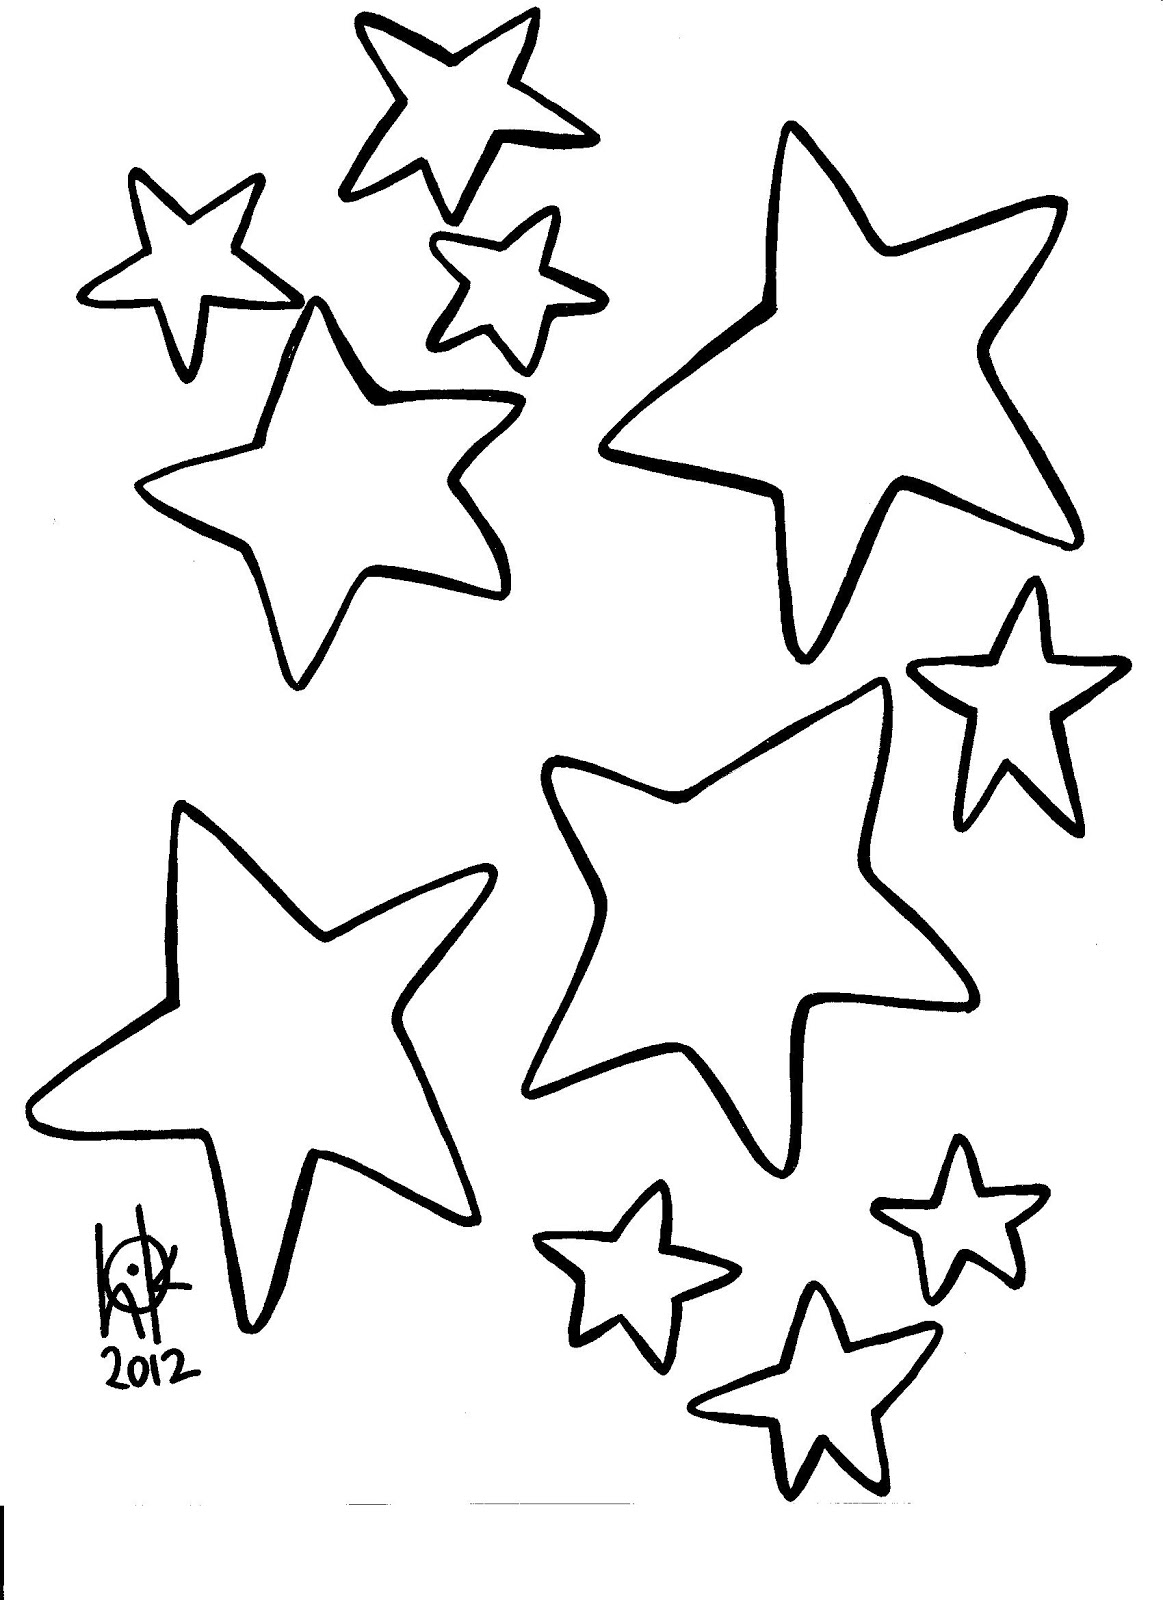 colouring pages stars star coloring pages for childrens printable for free pages stars colouring